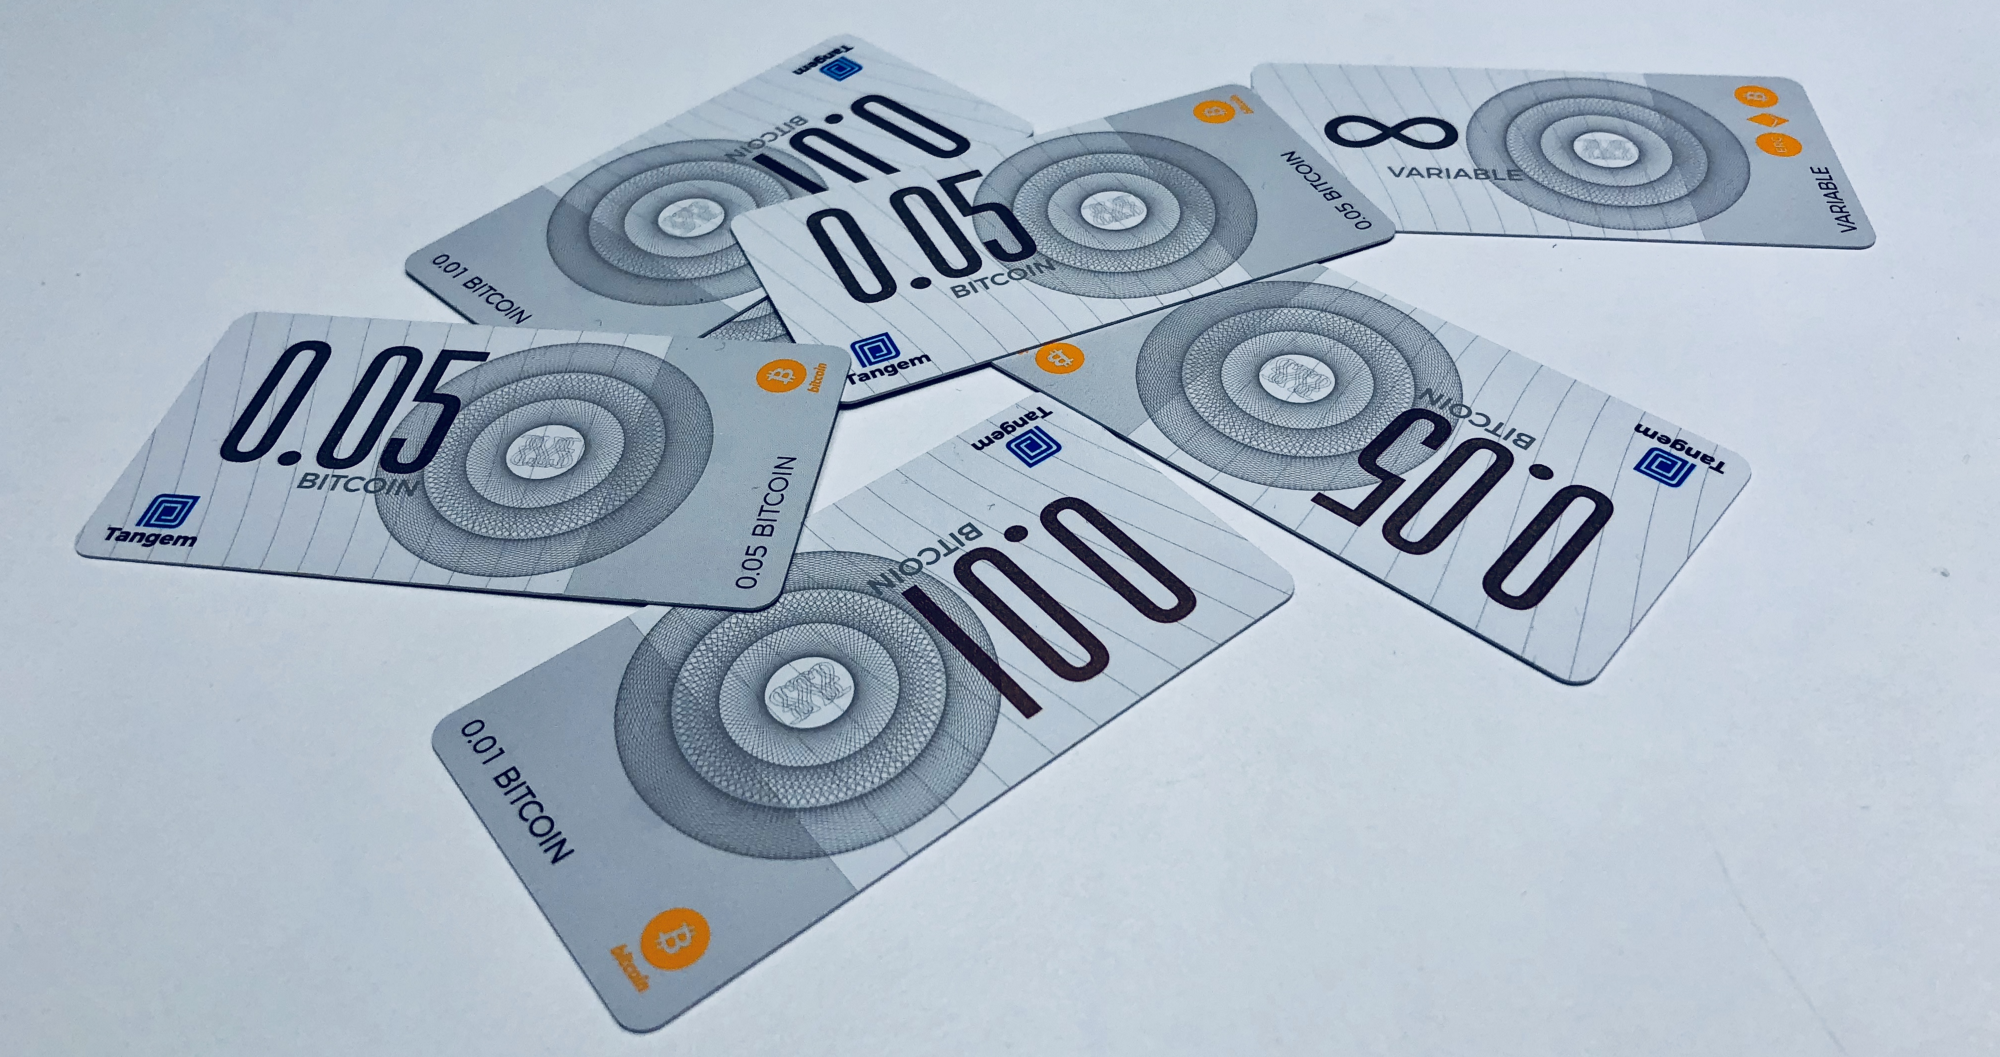 Swiss Startup Develops Physical Bitcoin Notes To Drive Uptake |